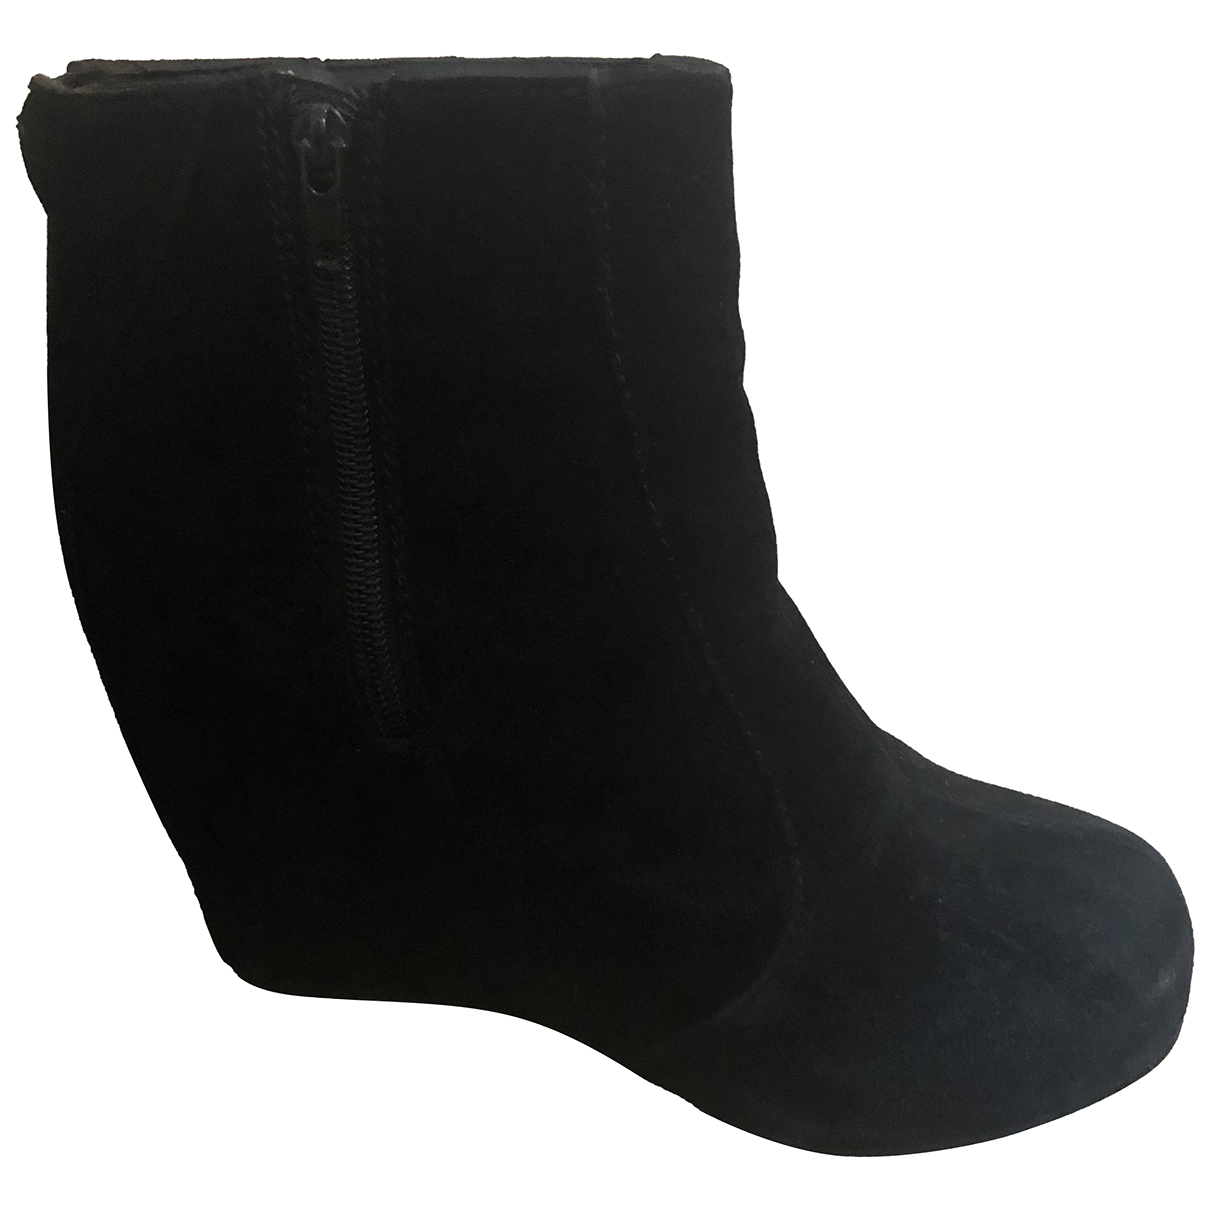 Jeffrey Campbell N Black Suede Ankle boots for Women 39 EU